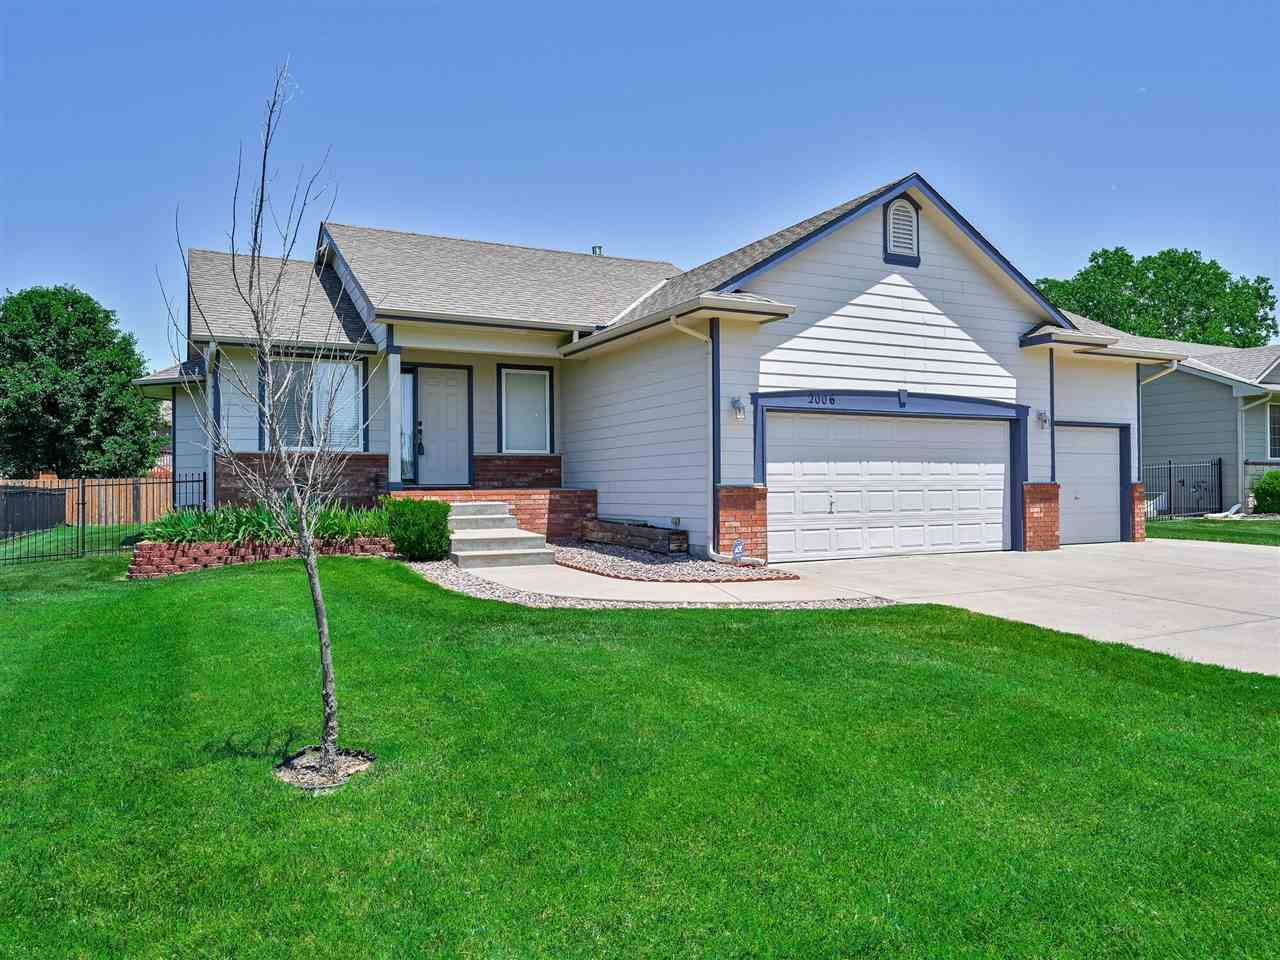 Turn-key and meticulously maintained 4 bedroom, 3 full bath, three car garage home with fenced backy